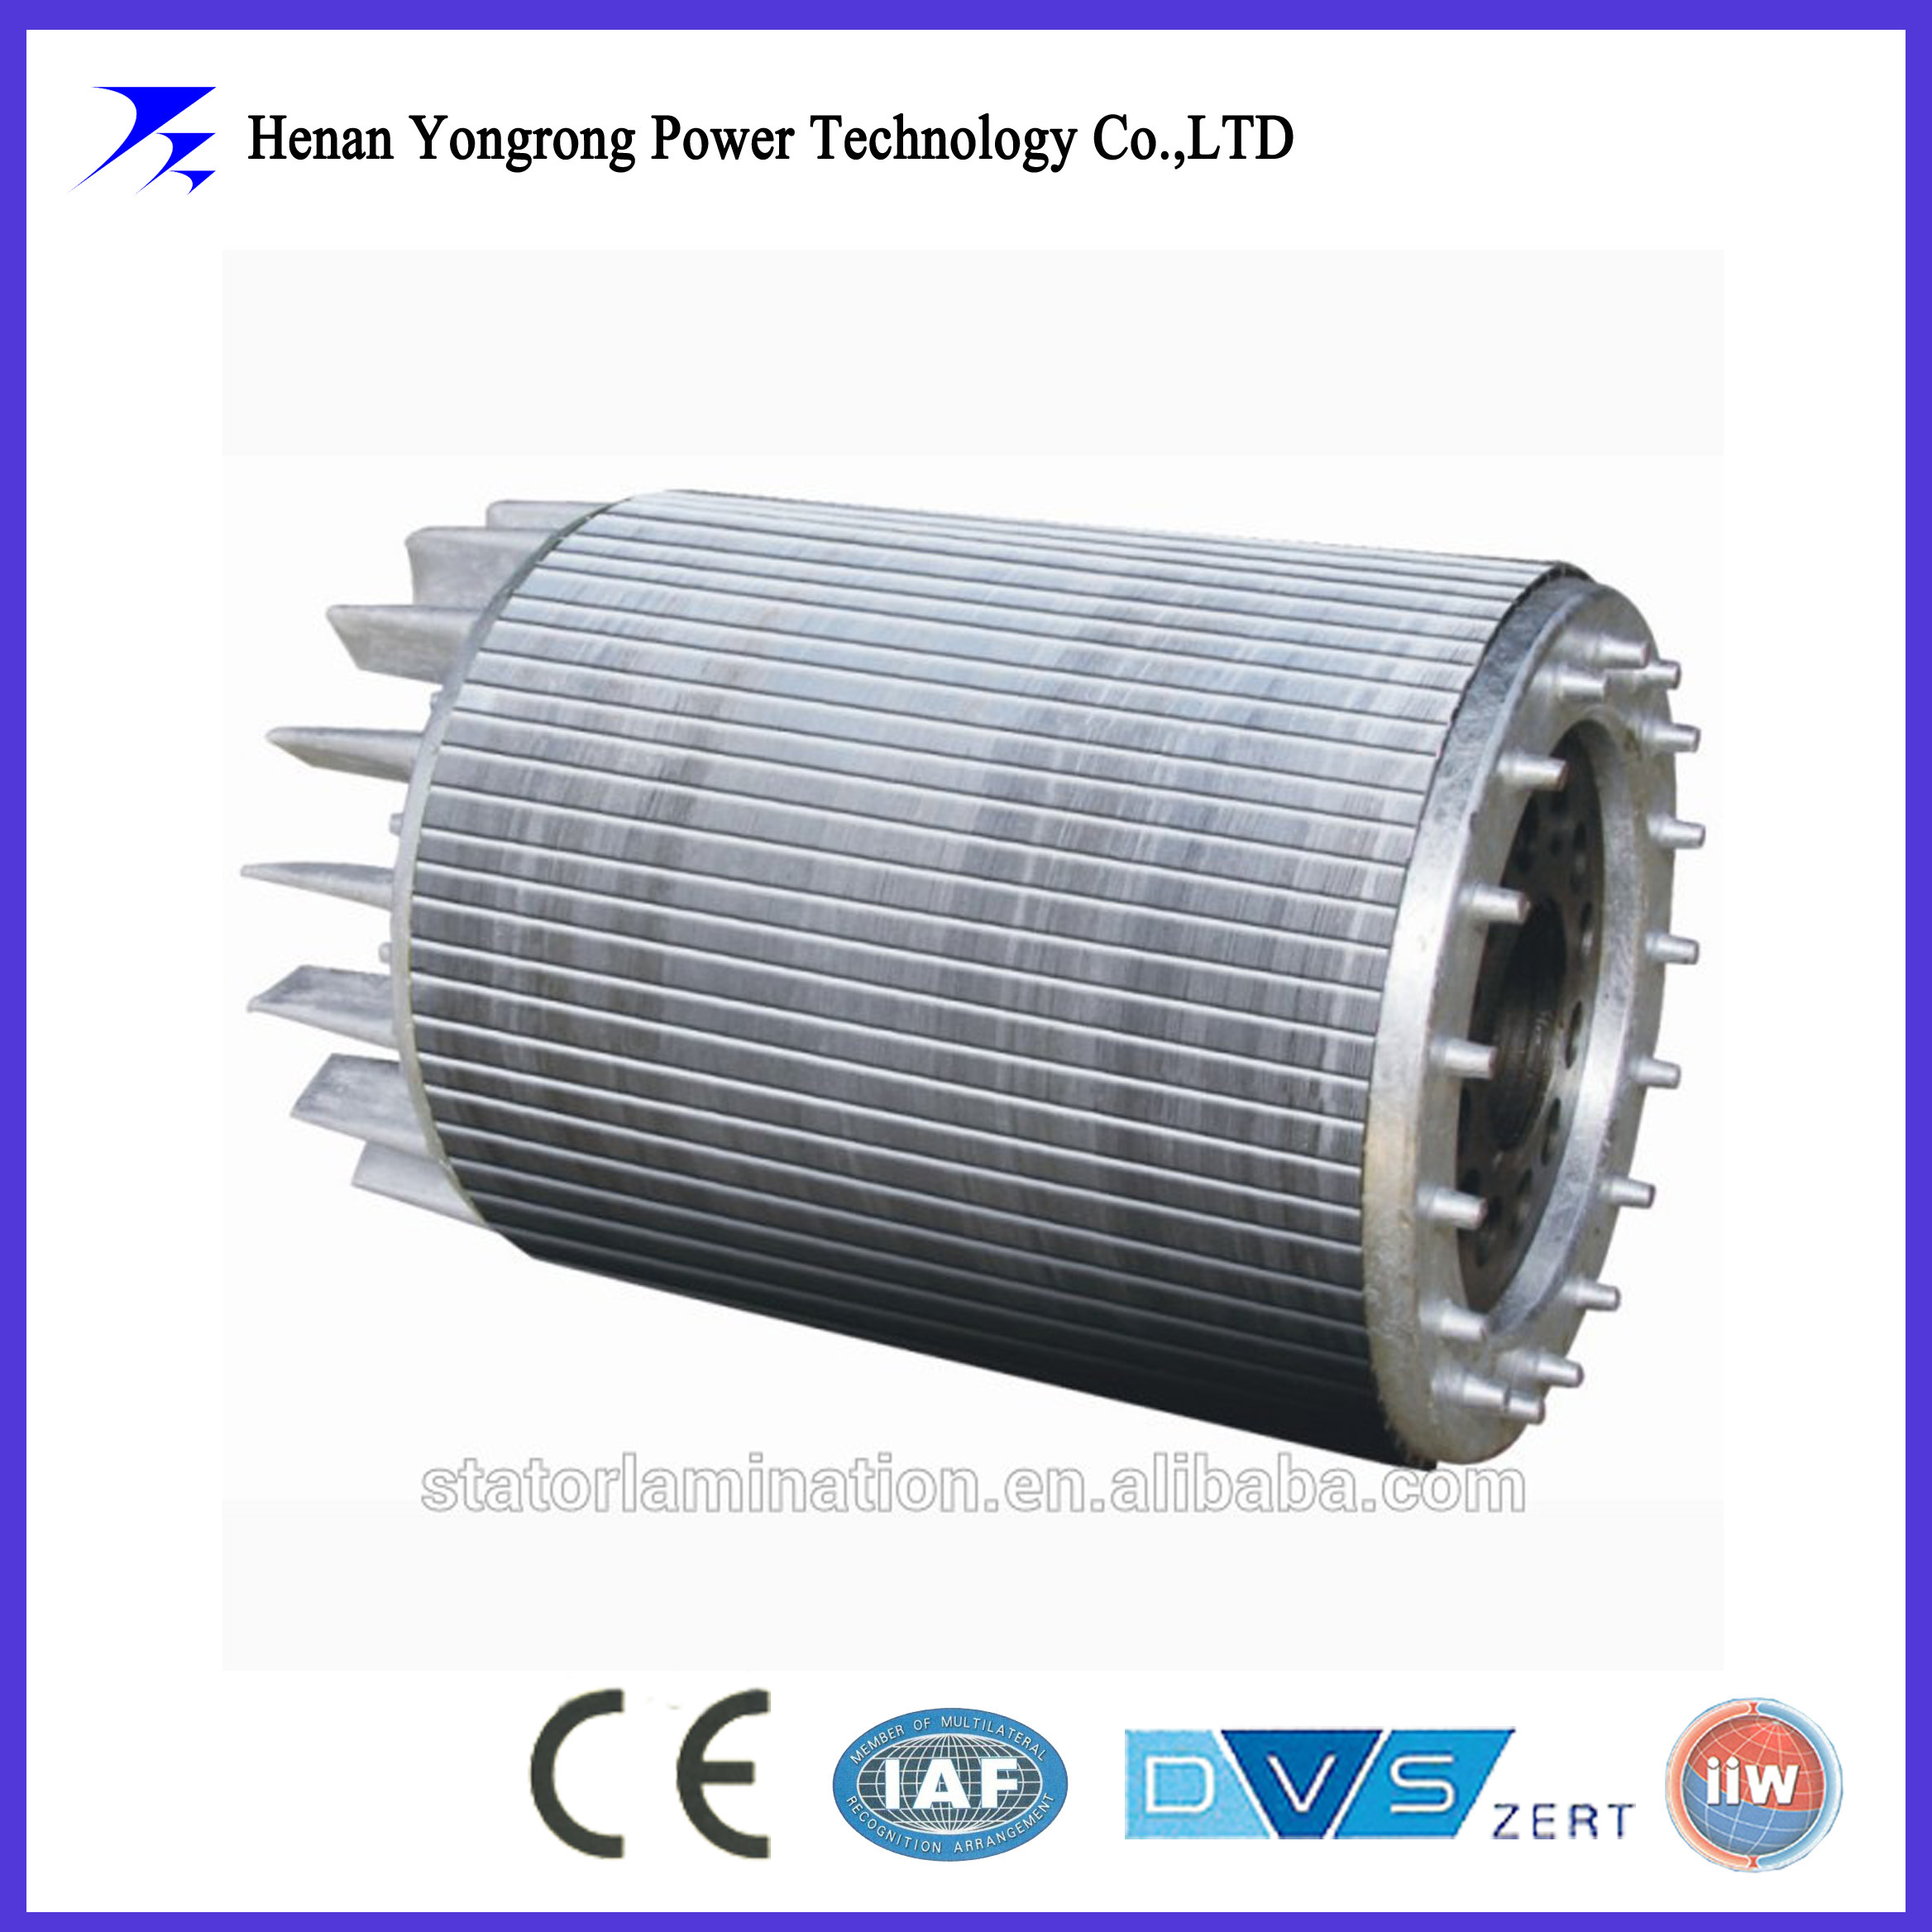 Three-phase asynchronous high efficiency motor rotor core